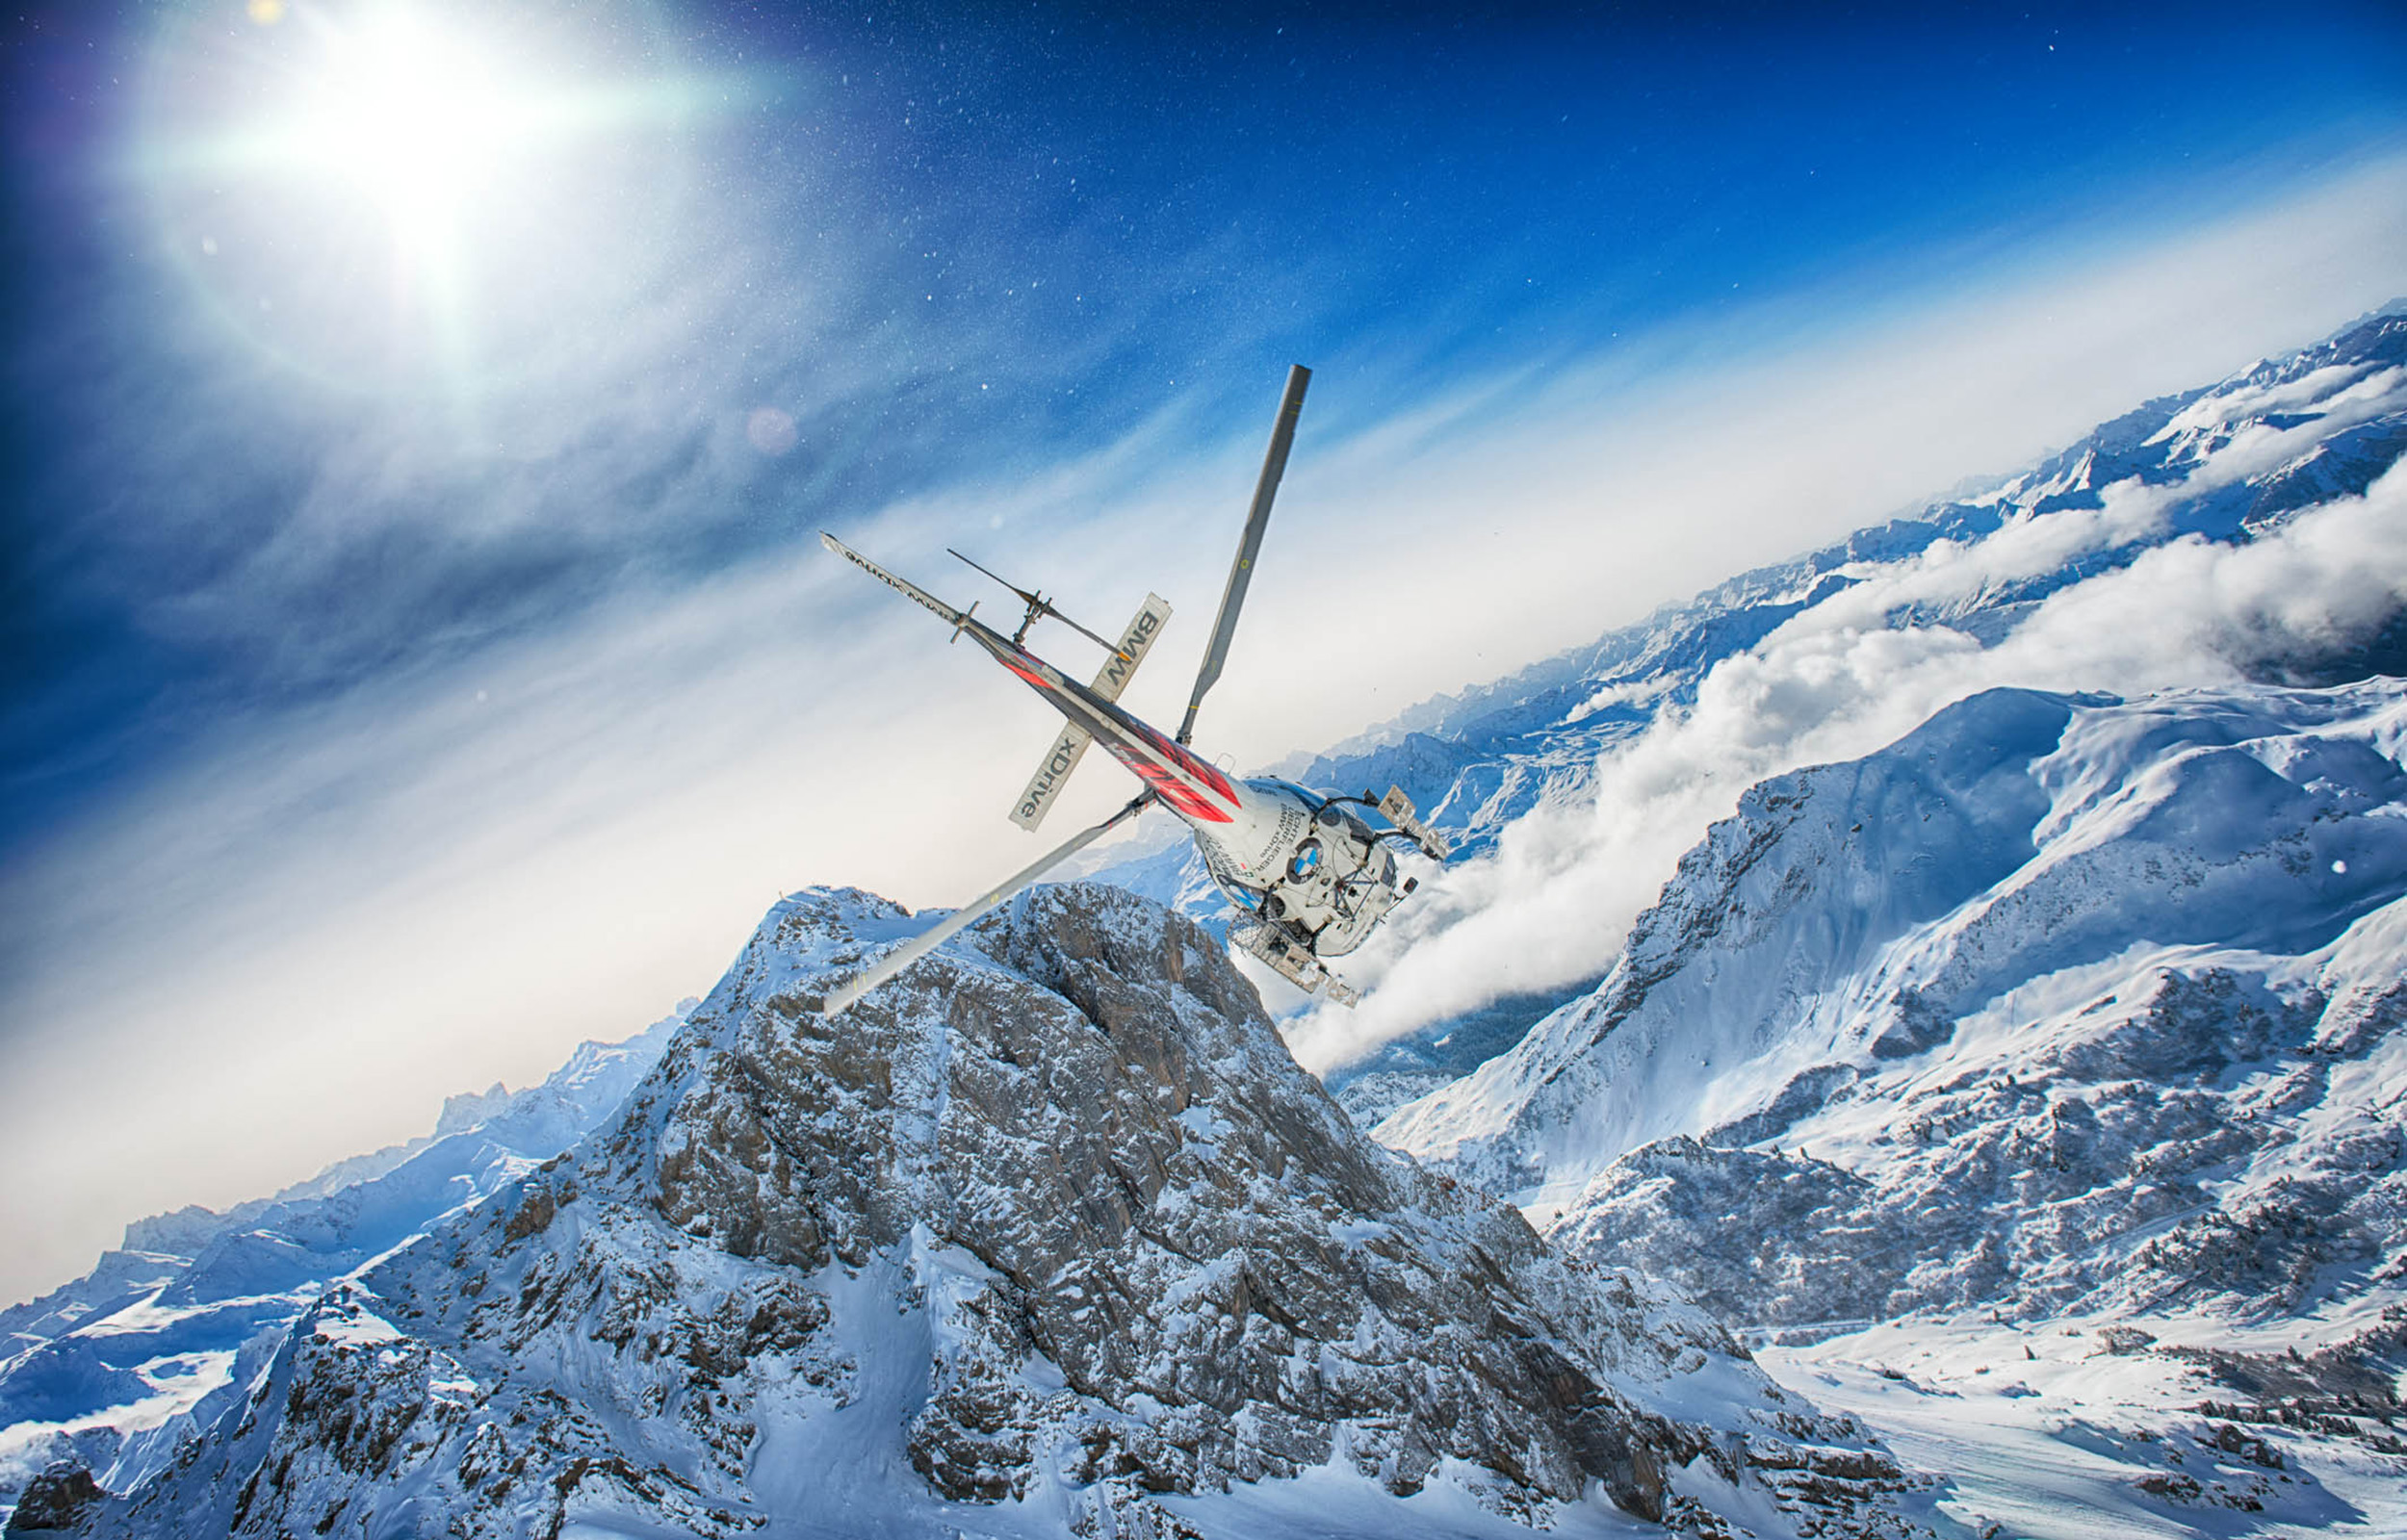 alpine heli ski with Heli Skiing on Heli Skiing furthermore 2010 Alpine U S Ski Team Named Highlighted By Lindsey Vonn also 793 in addition More Flights To Telluride Than Ever Before additionally An Ode To Ski Instructors.